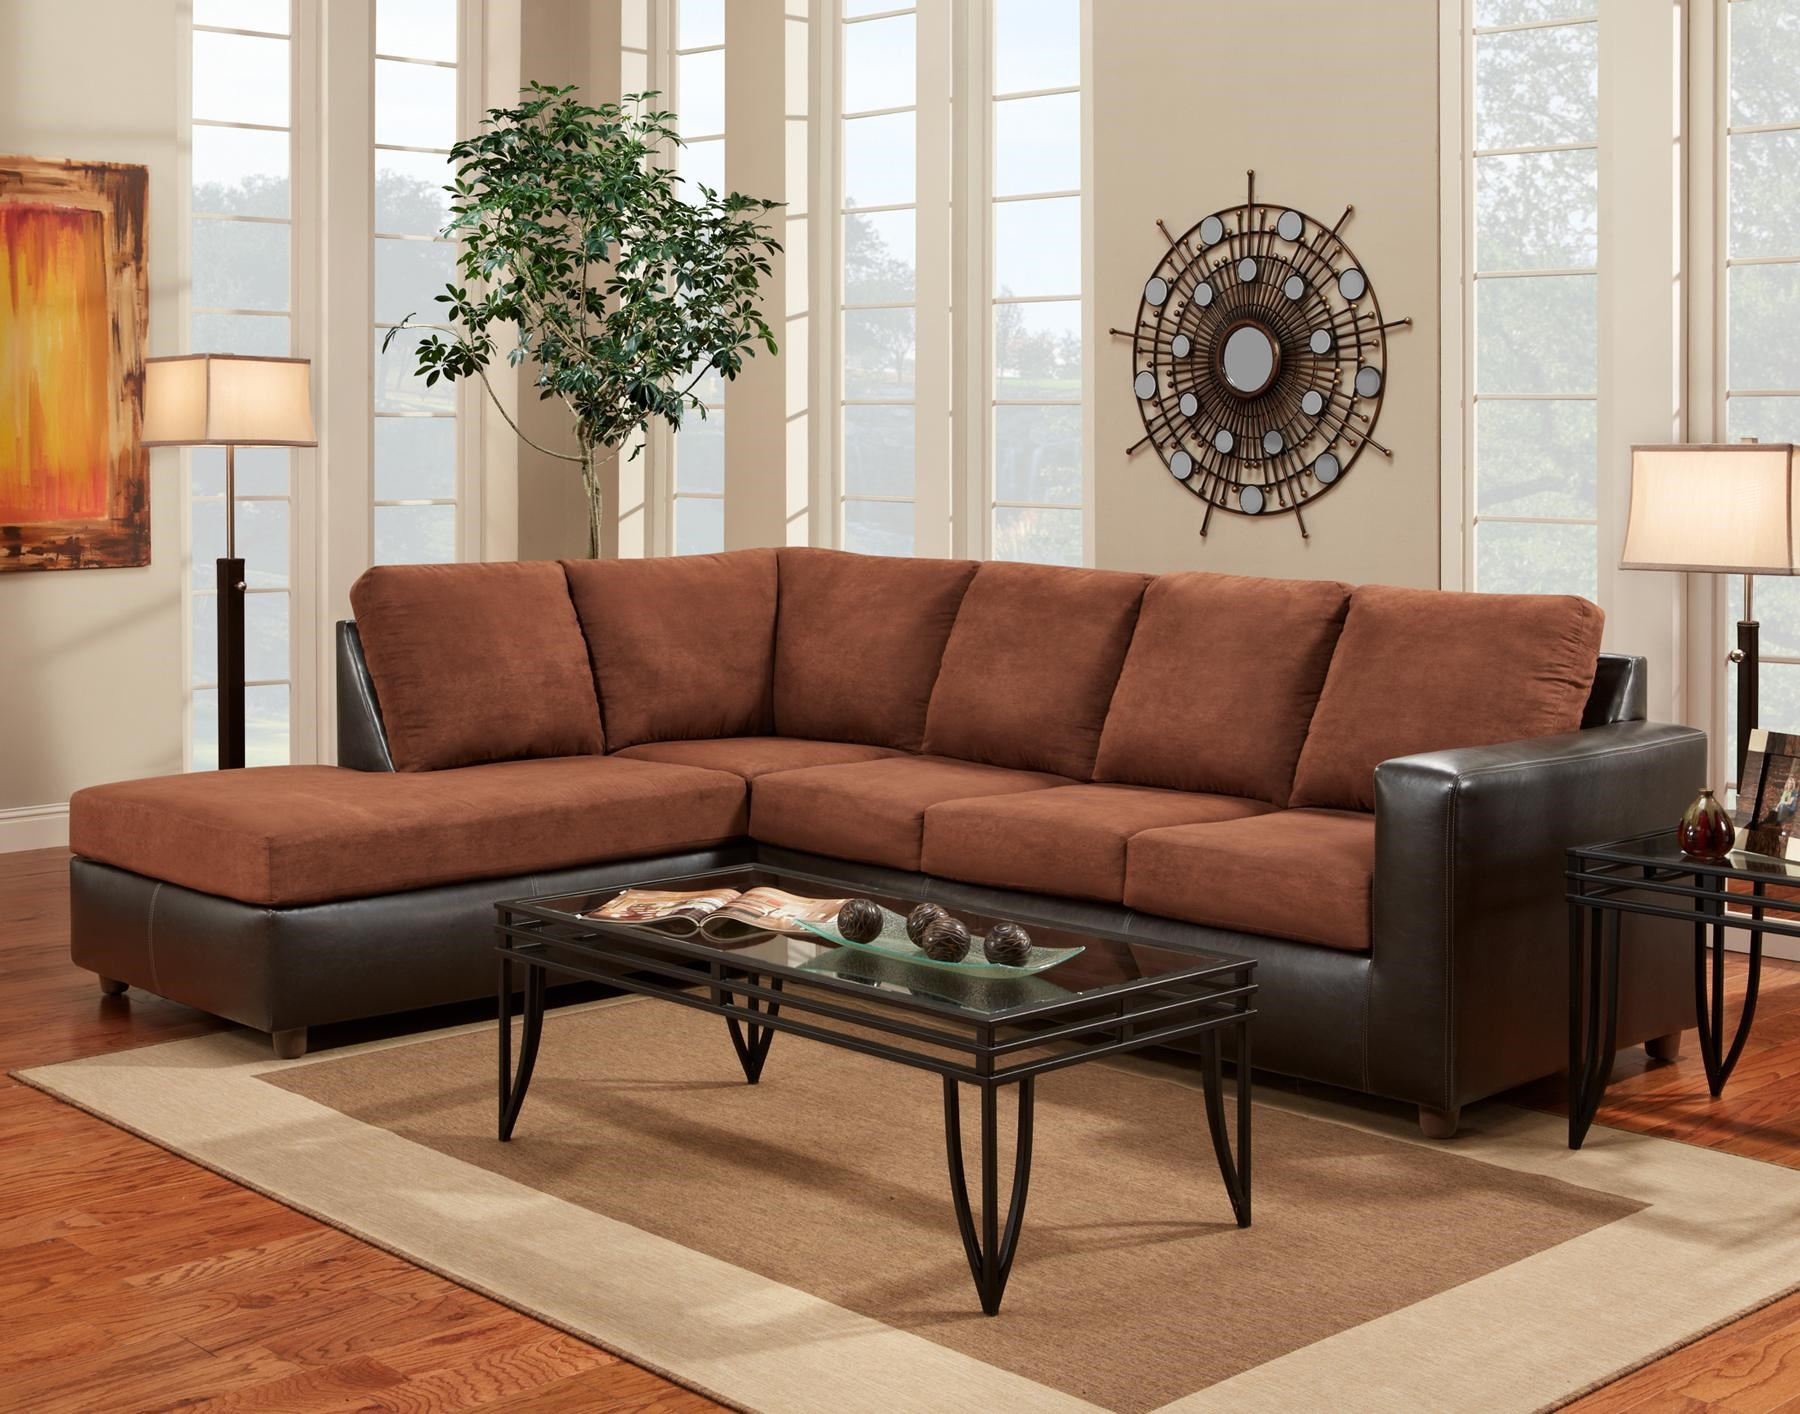 Merveilleux Affordable Furniture 3650 Sofa Sectional